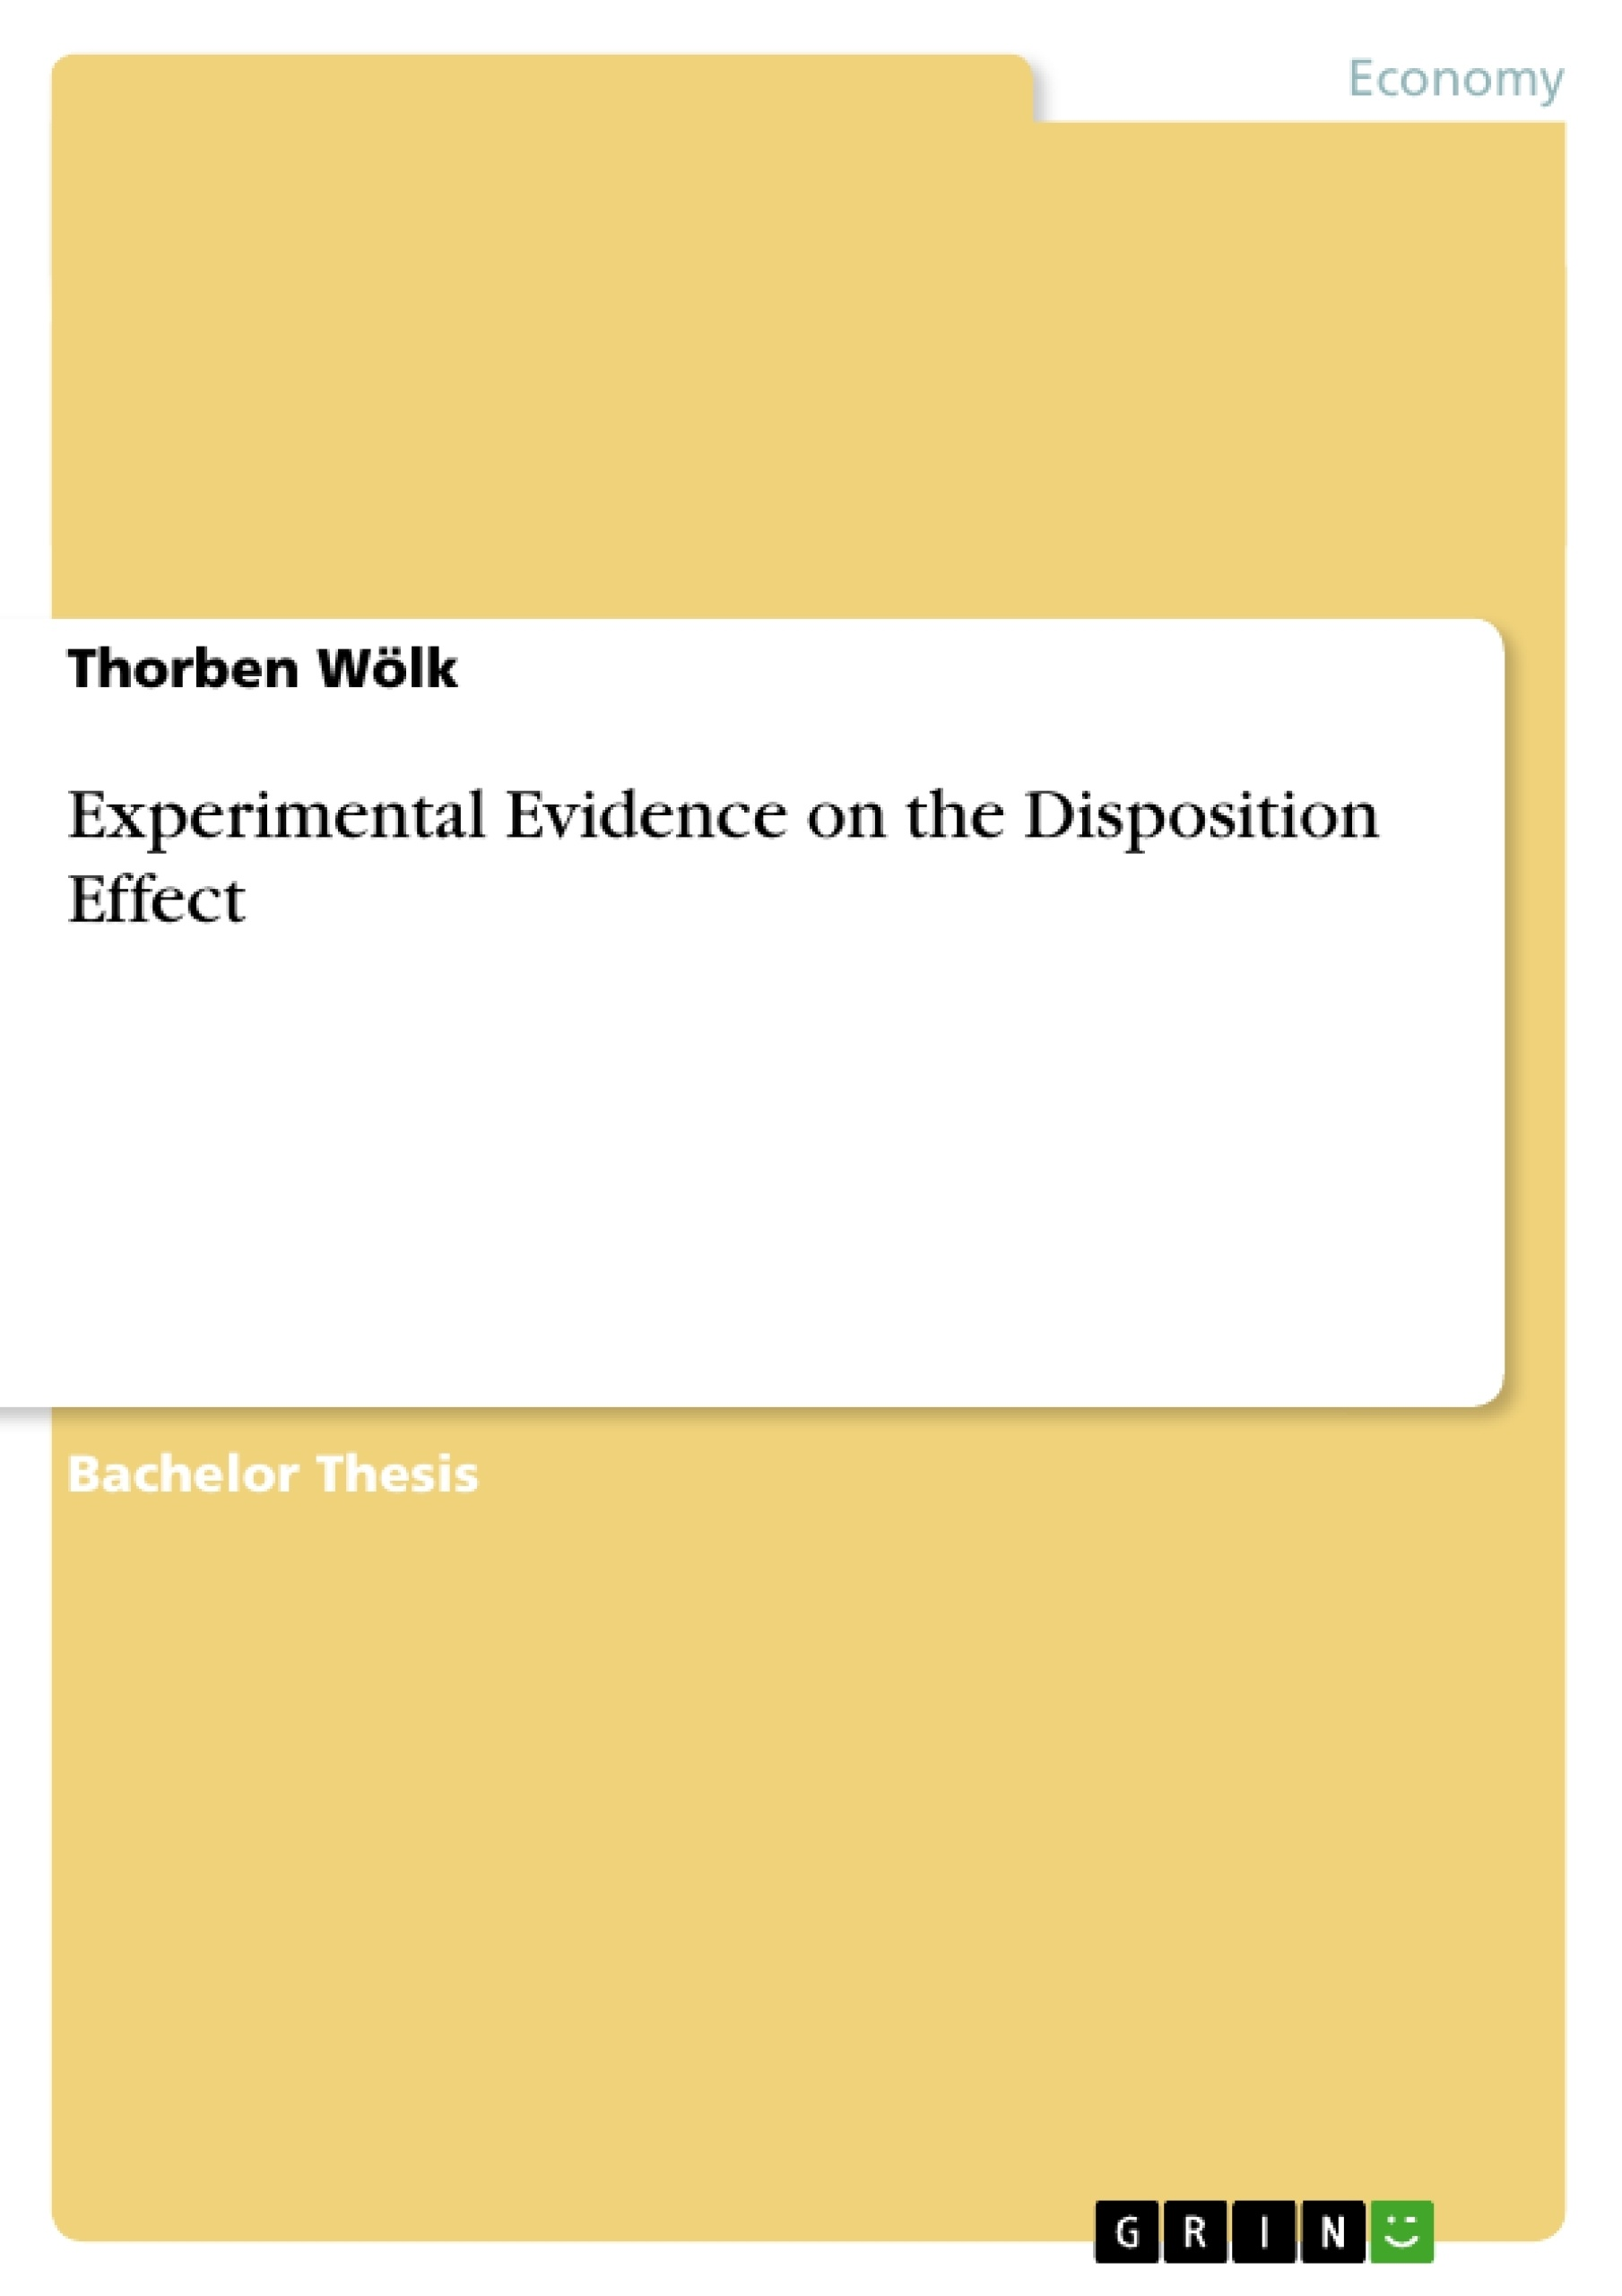 how to avoid disposition effect